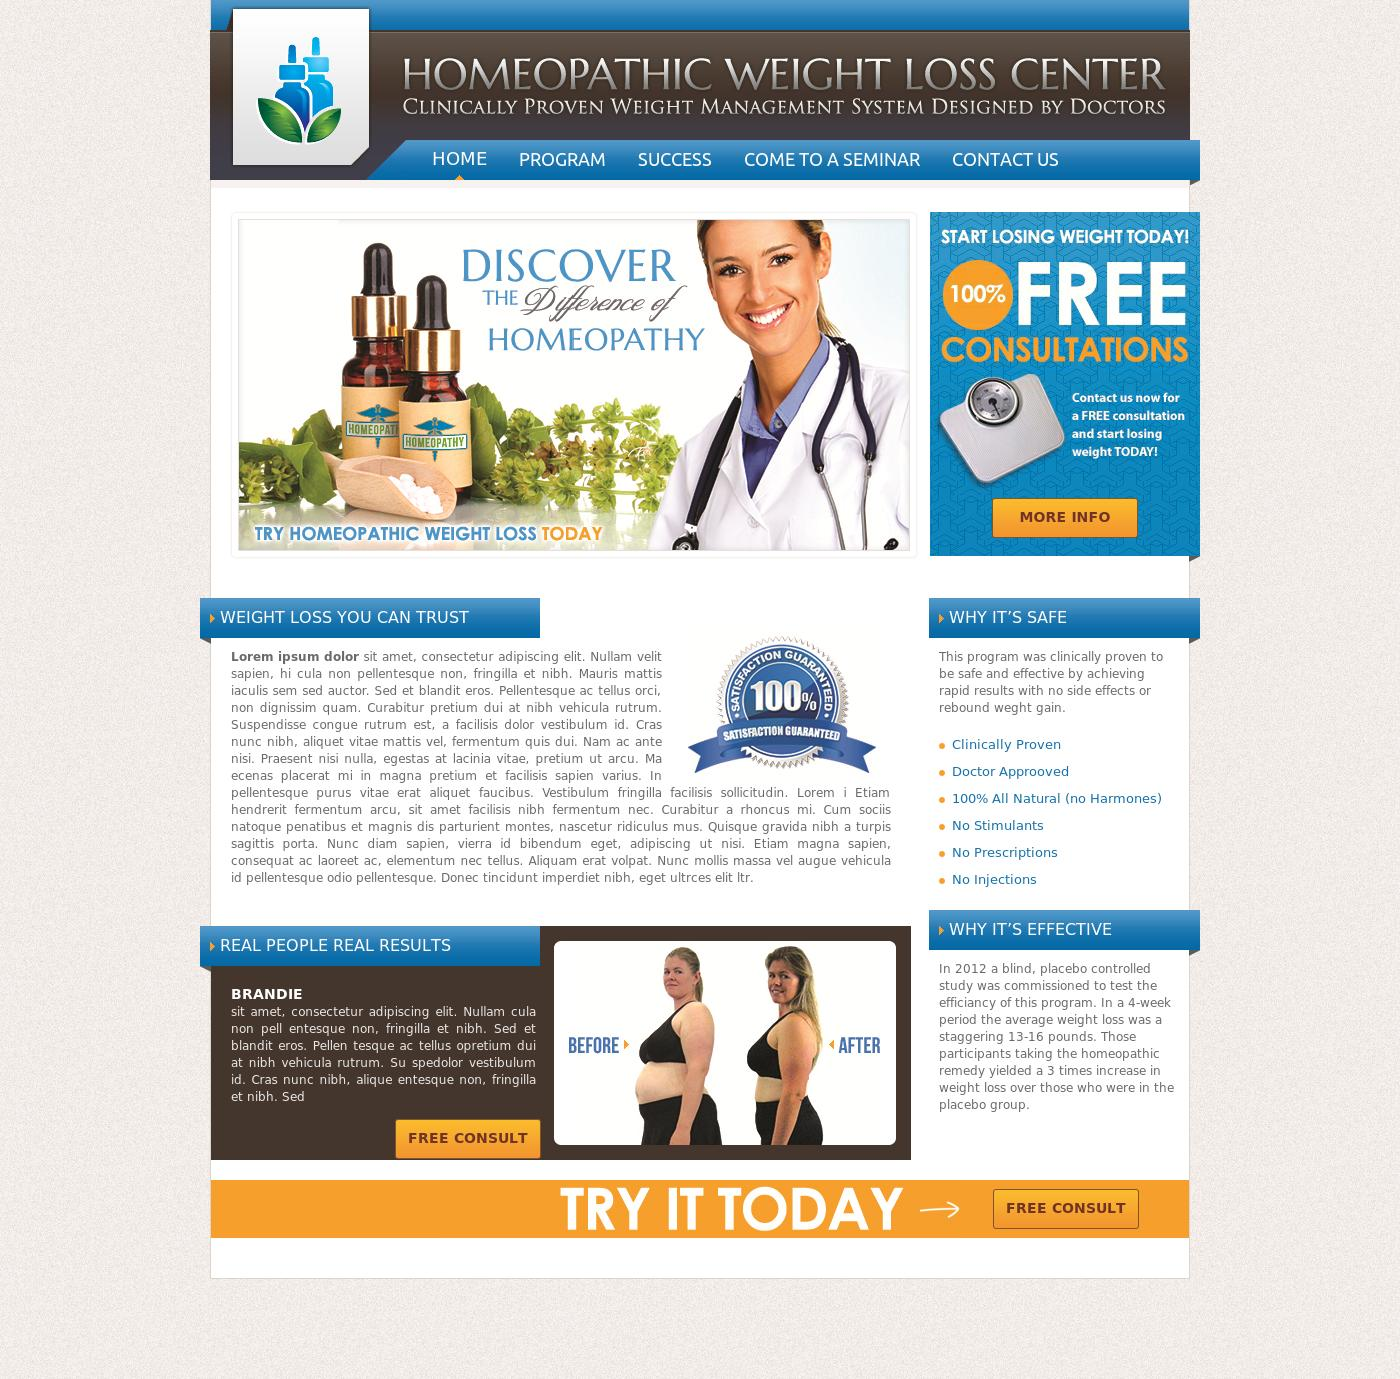 Homeopathic Weight Loss Center